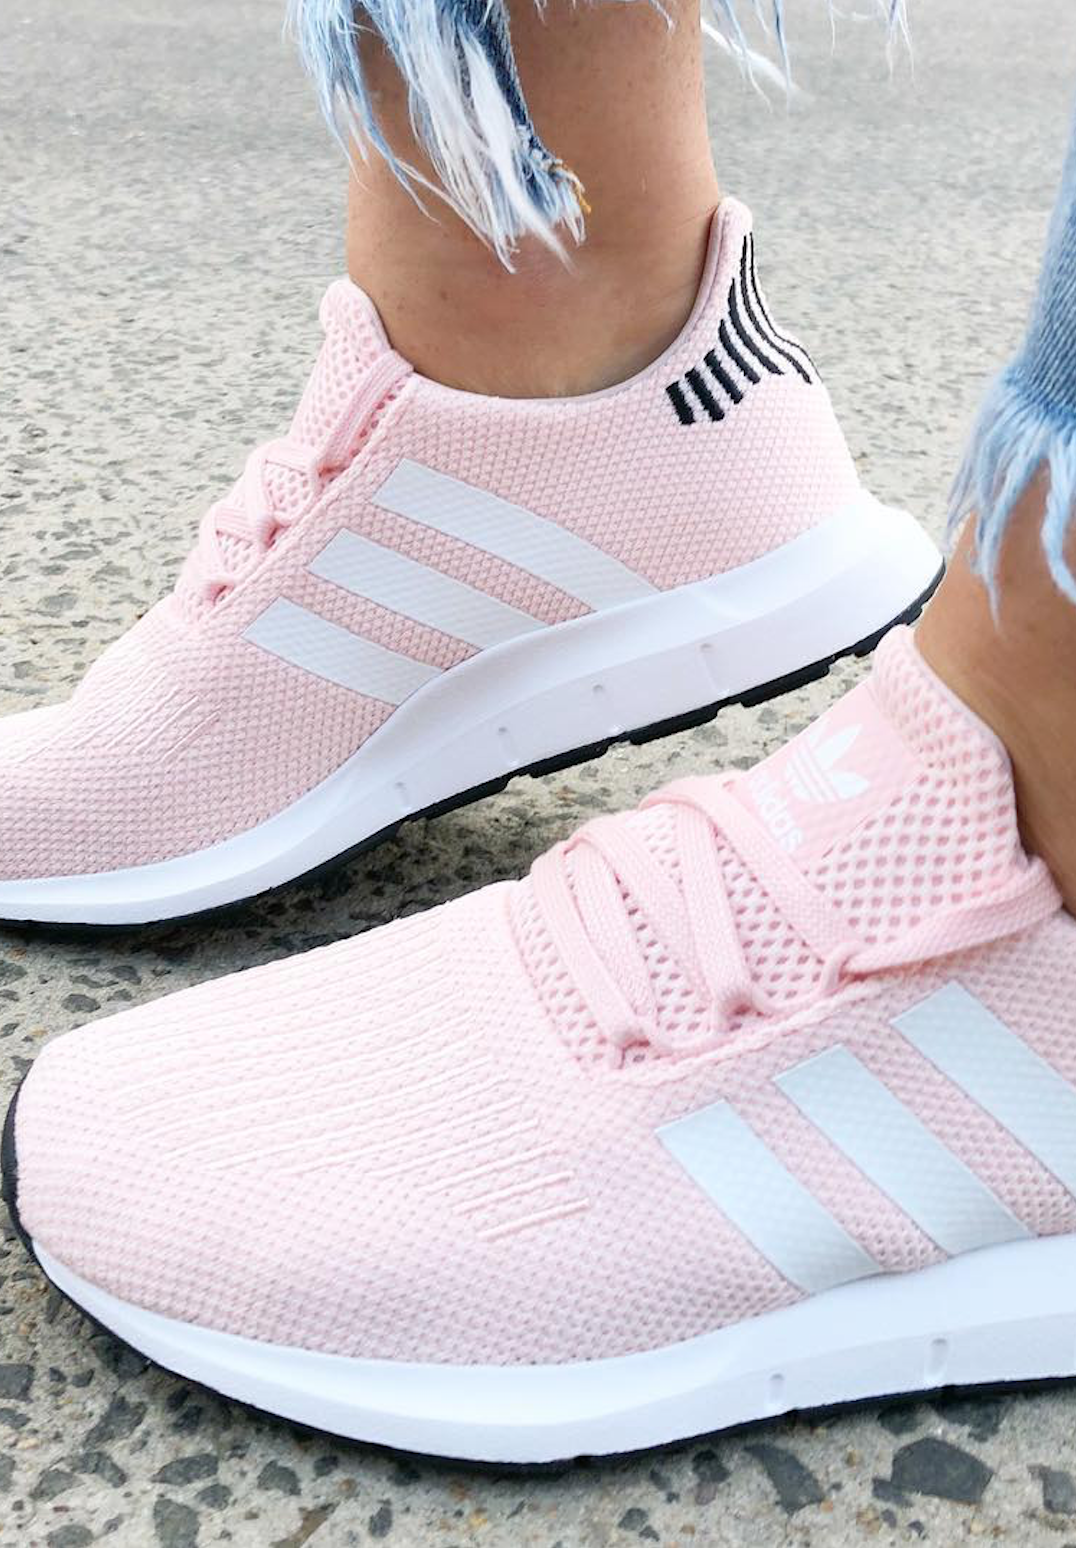 sale retailer e4b48 5b66c adidas Swift Run Sneakers in Icy Pink. Seriously stylish shoes 2018.